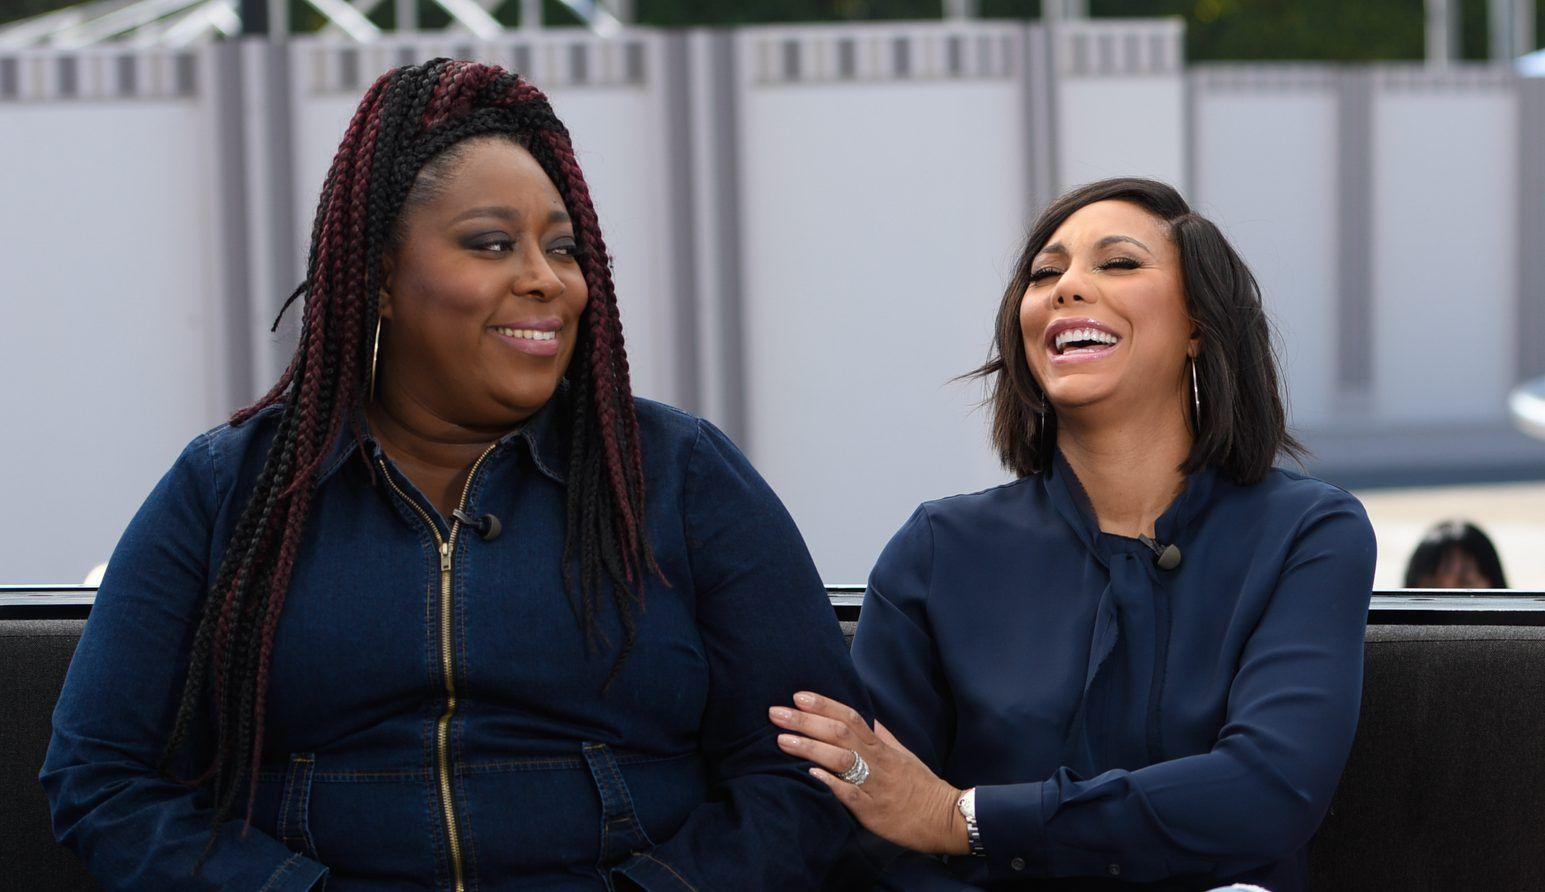 Tamar Braxton Directly Names Loni Love As The Culprit Who Got Her Fired From The Real